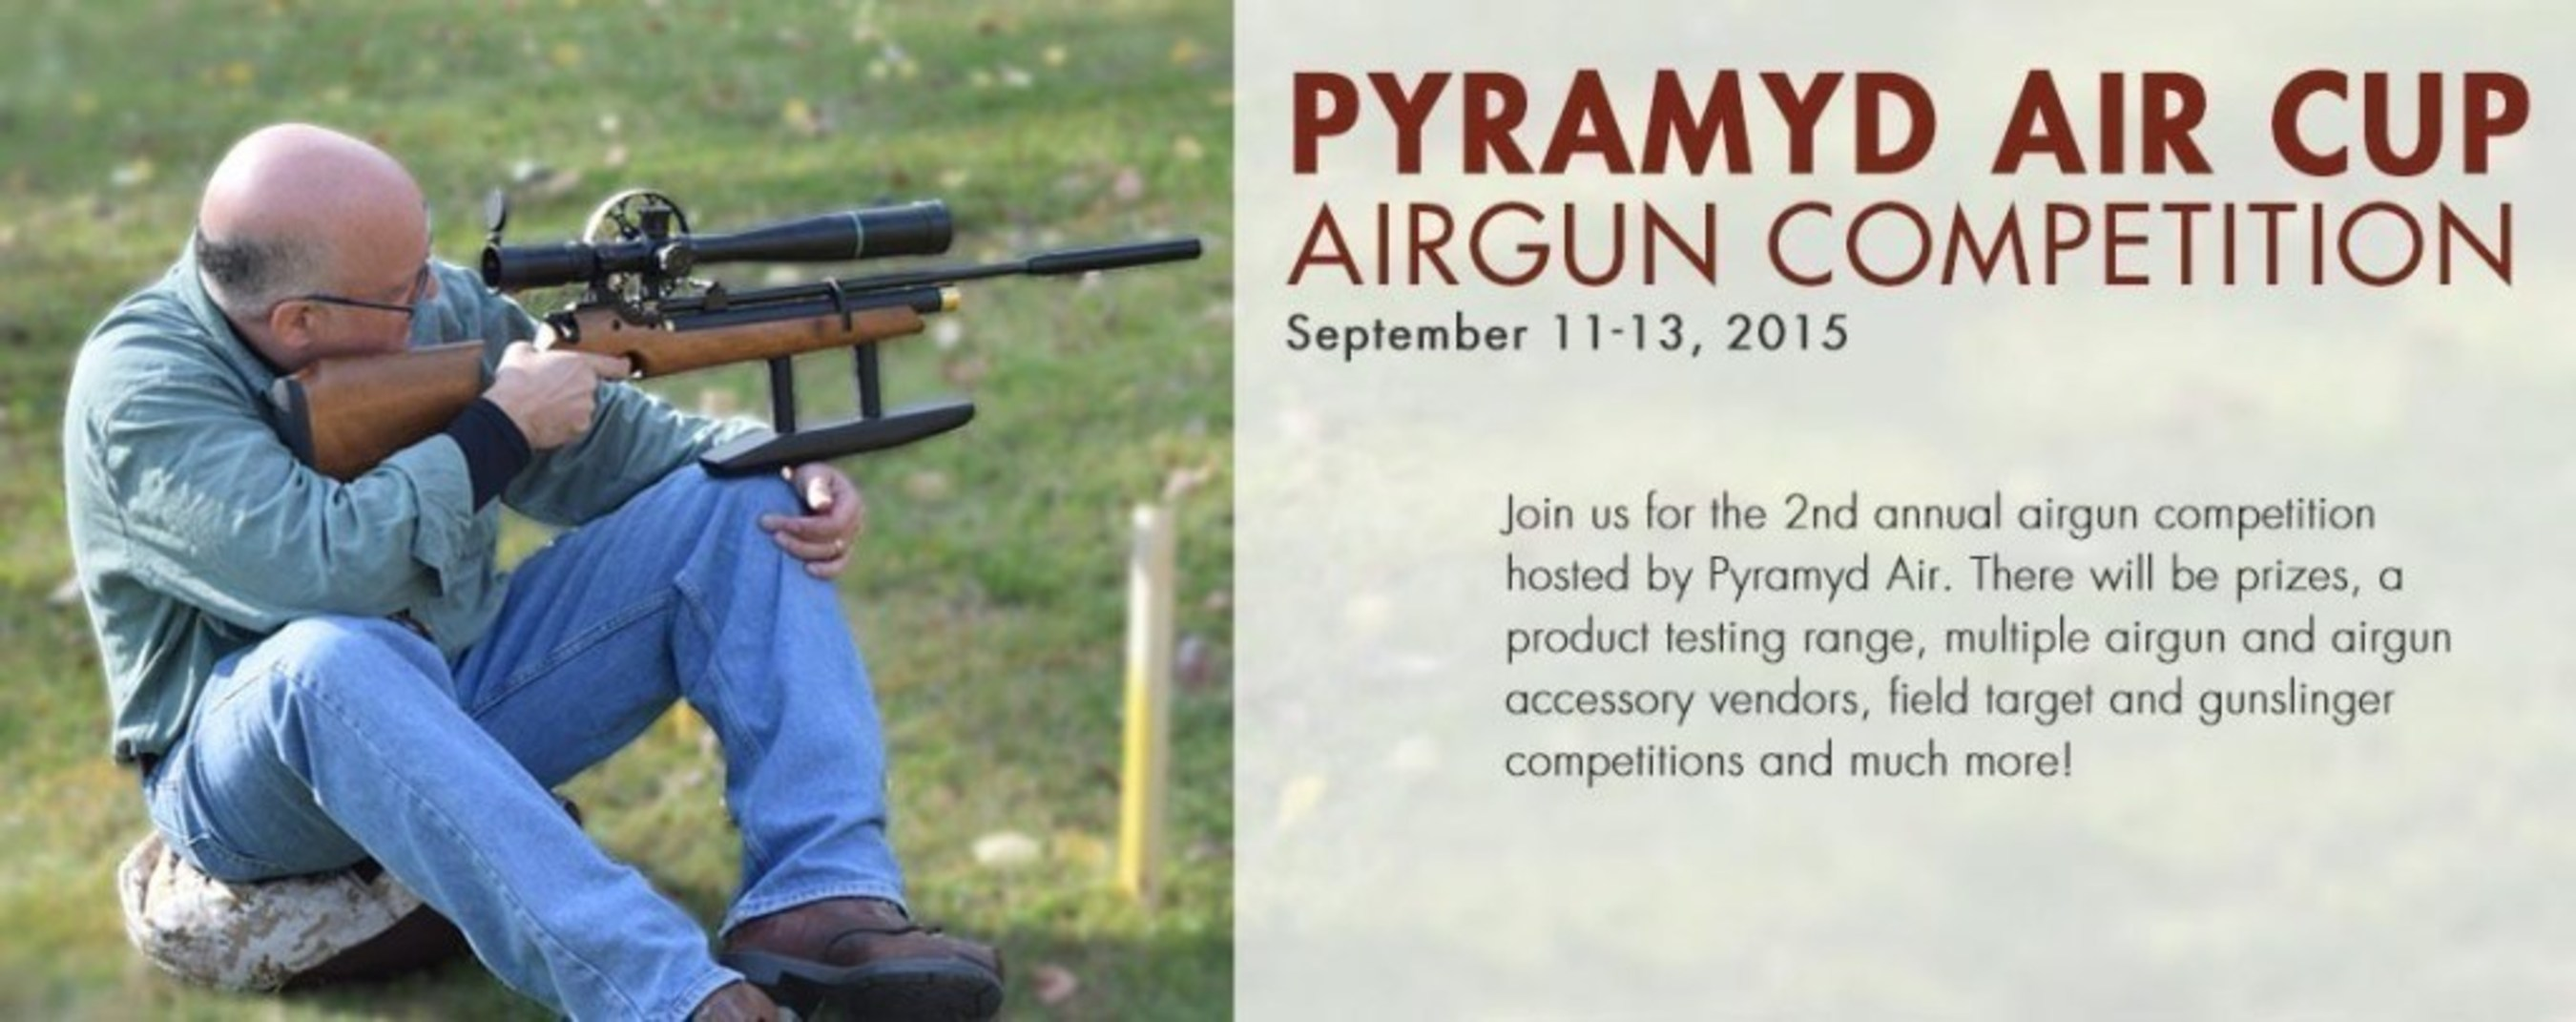 Pyramyd Air Hosts Second Pyramyd Air Cup Airgun Competition